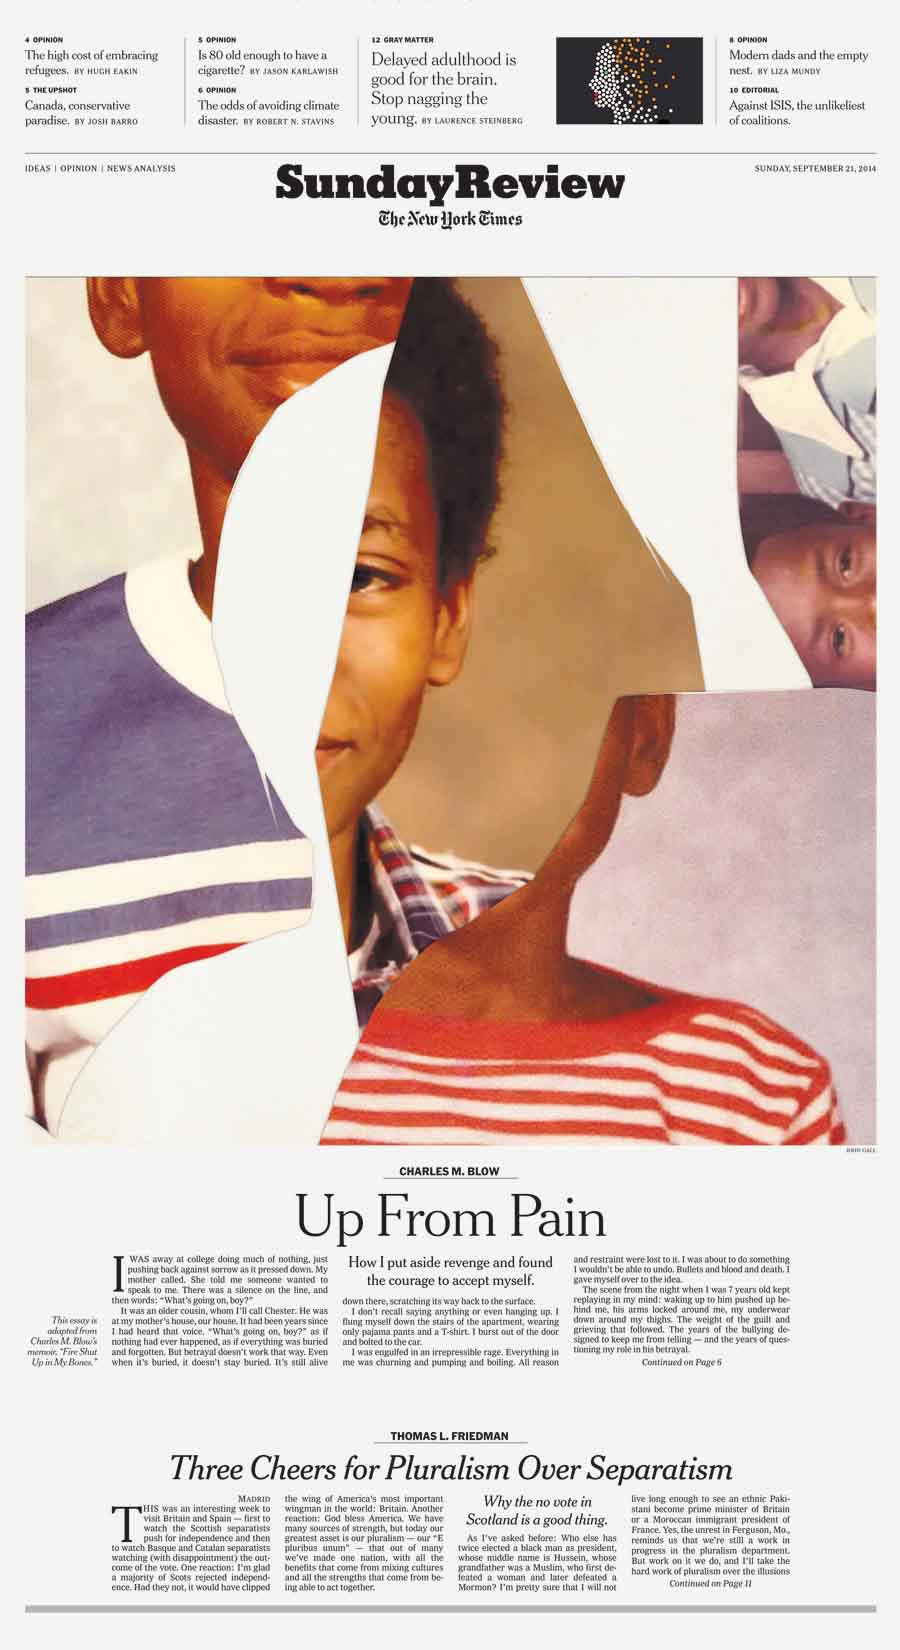 Up Fro Pain